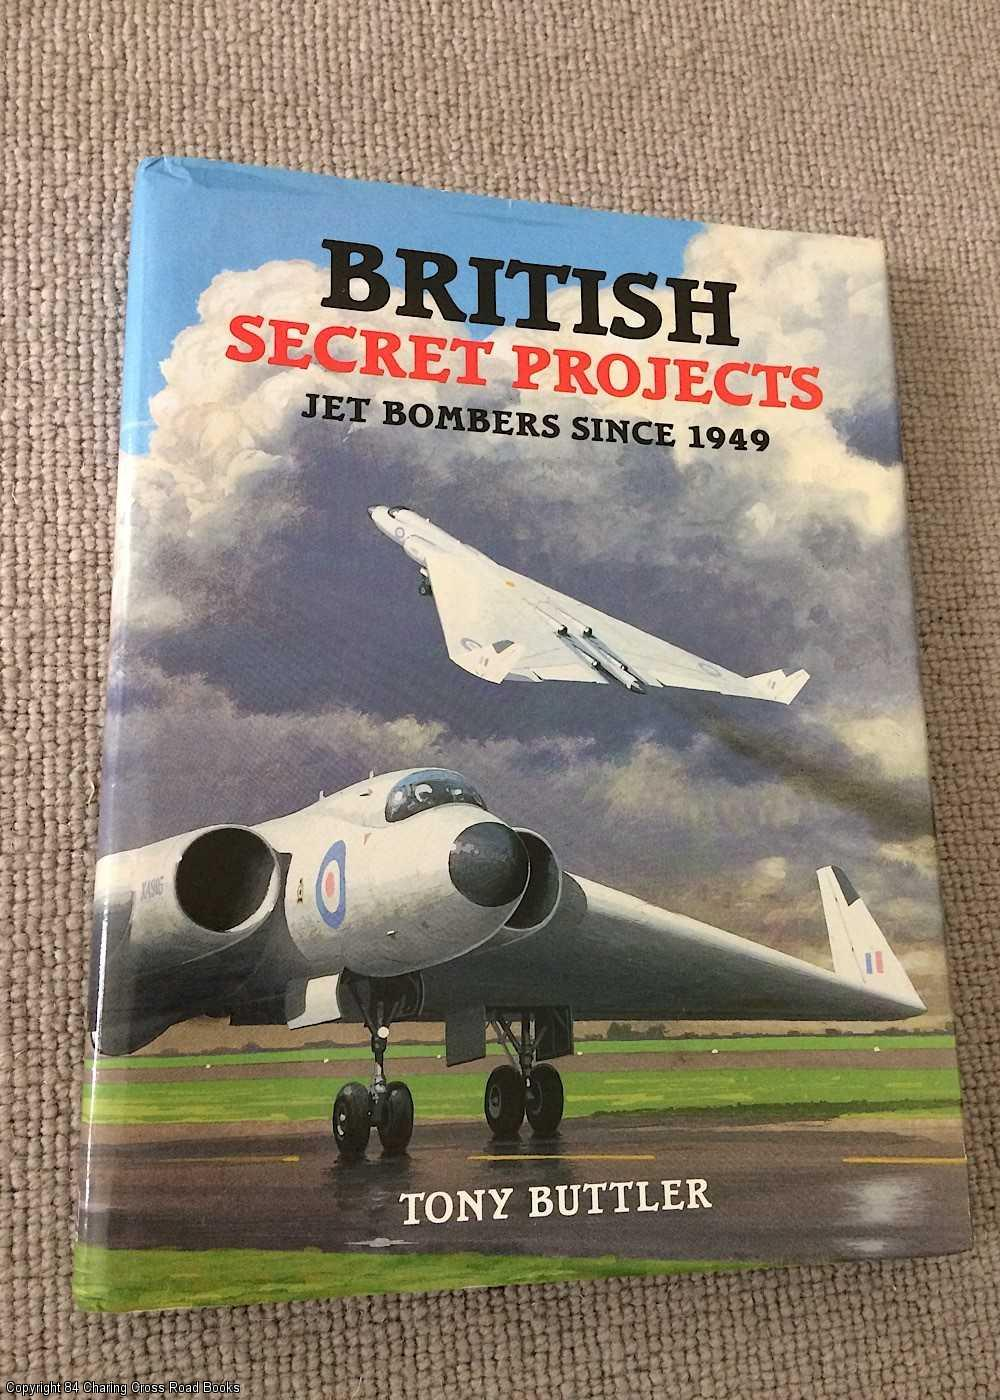 BUTTLER, TONY - British Secret Projects: Jet Bombers Since 1949